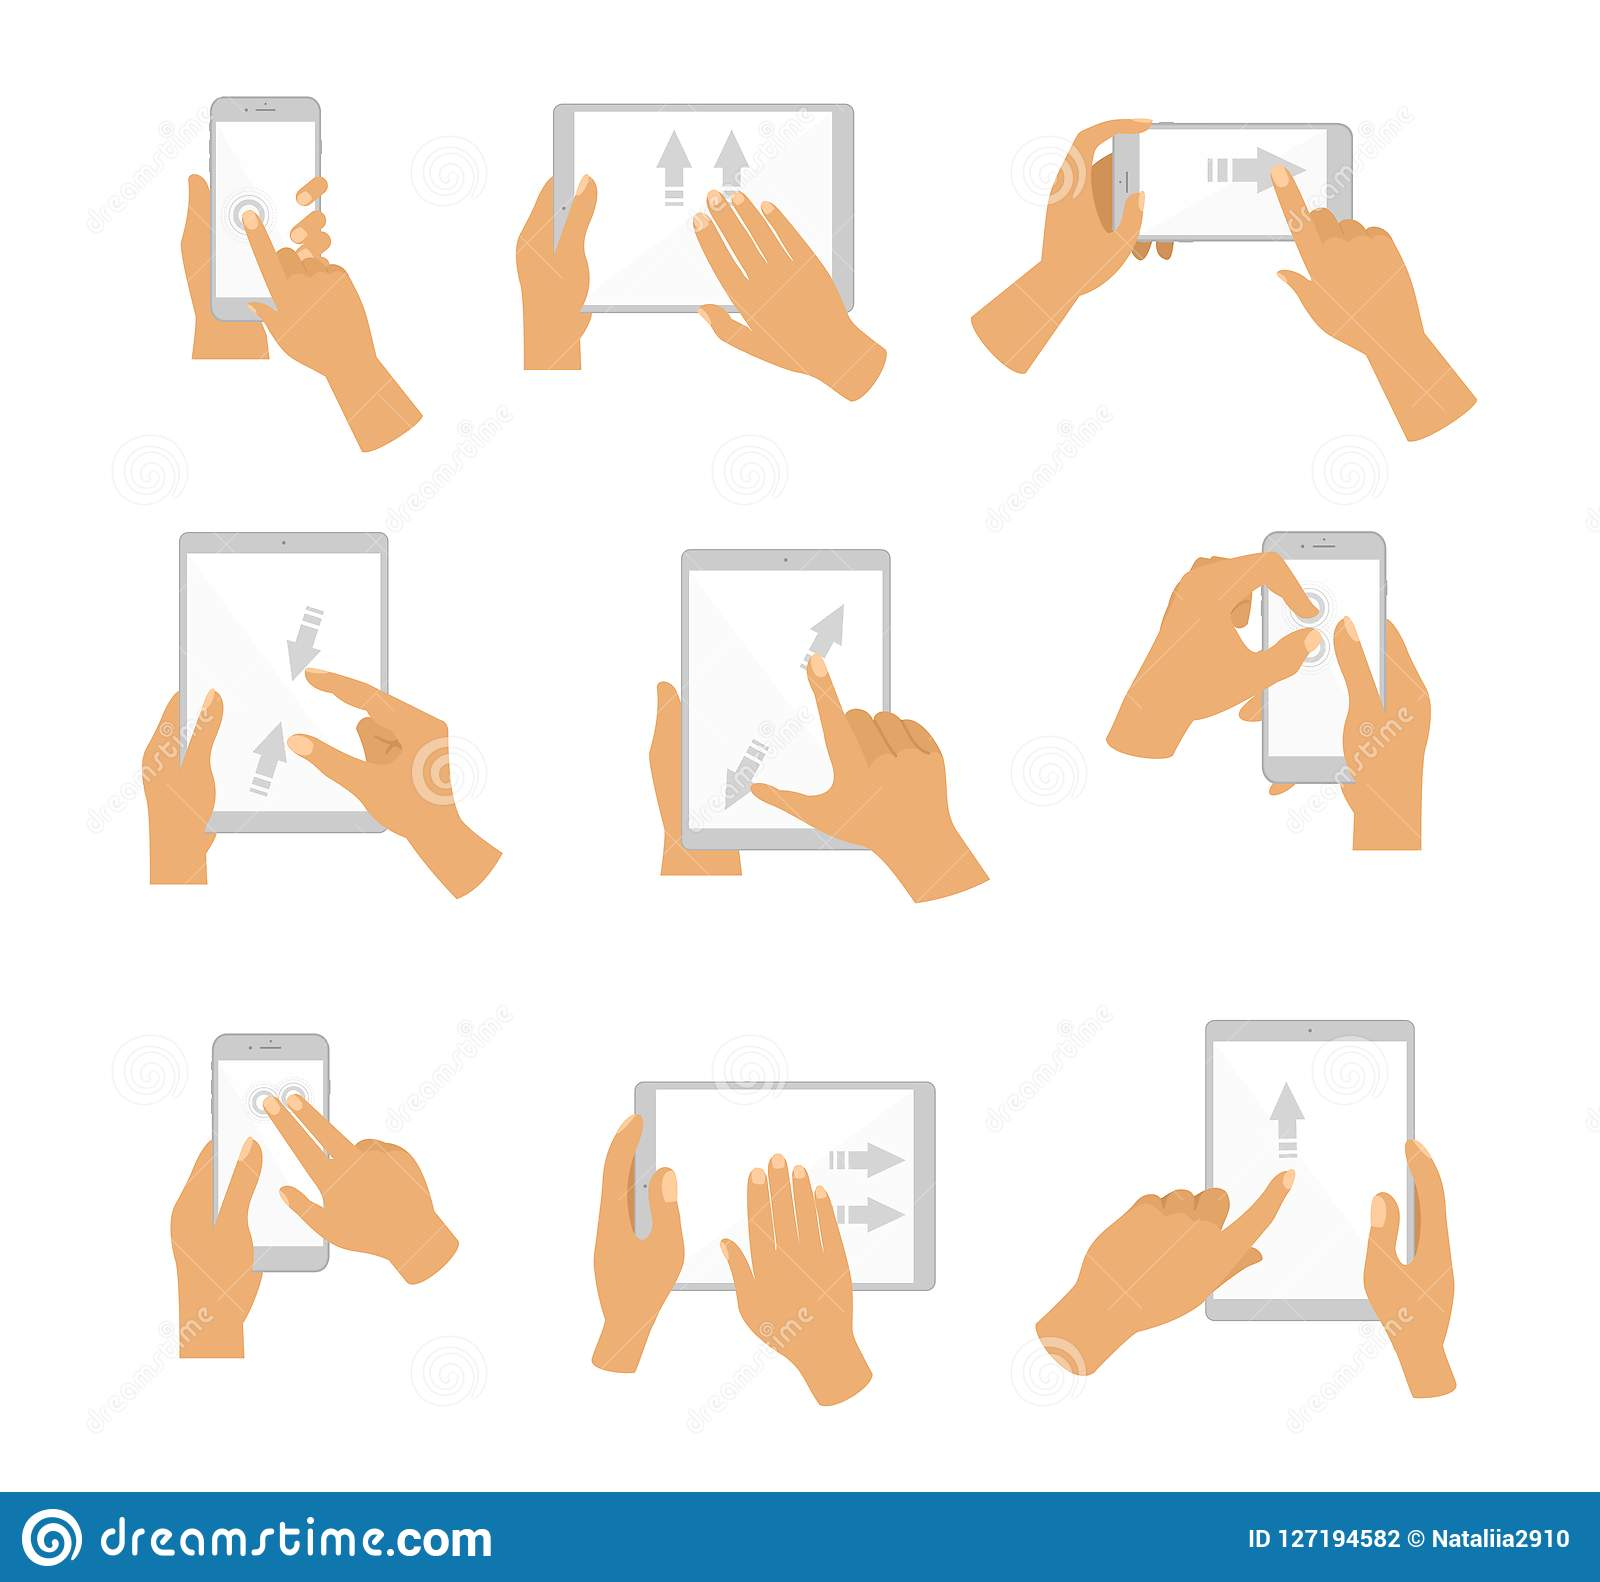 Vector illustration of collection of Hand Gesture for Touch Screen. Fingers touch screen of gadgets, flat design.